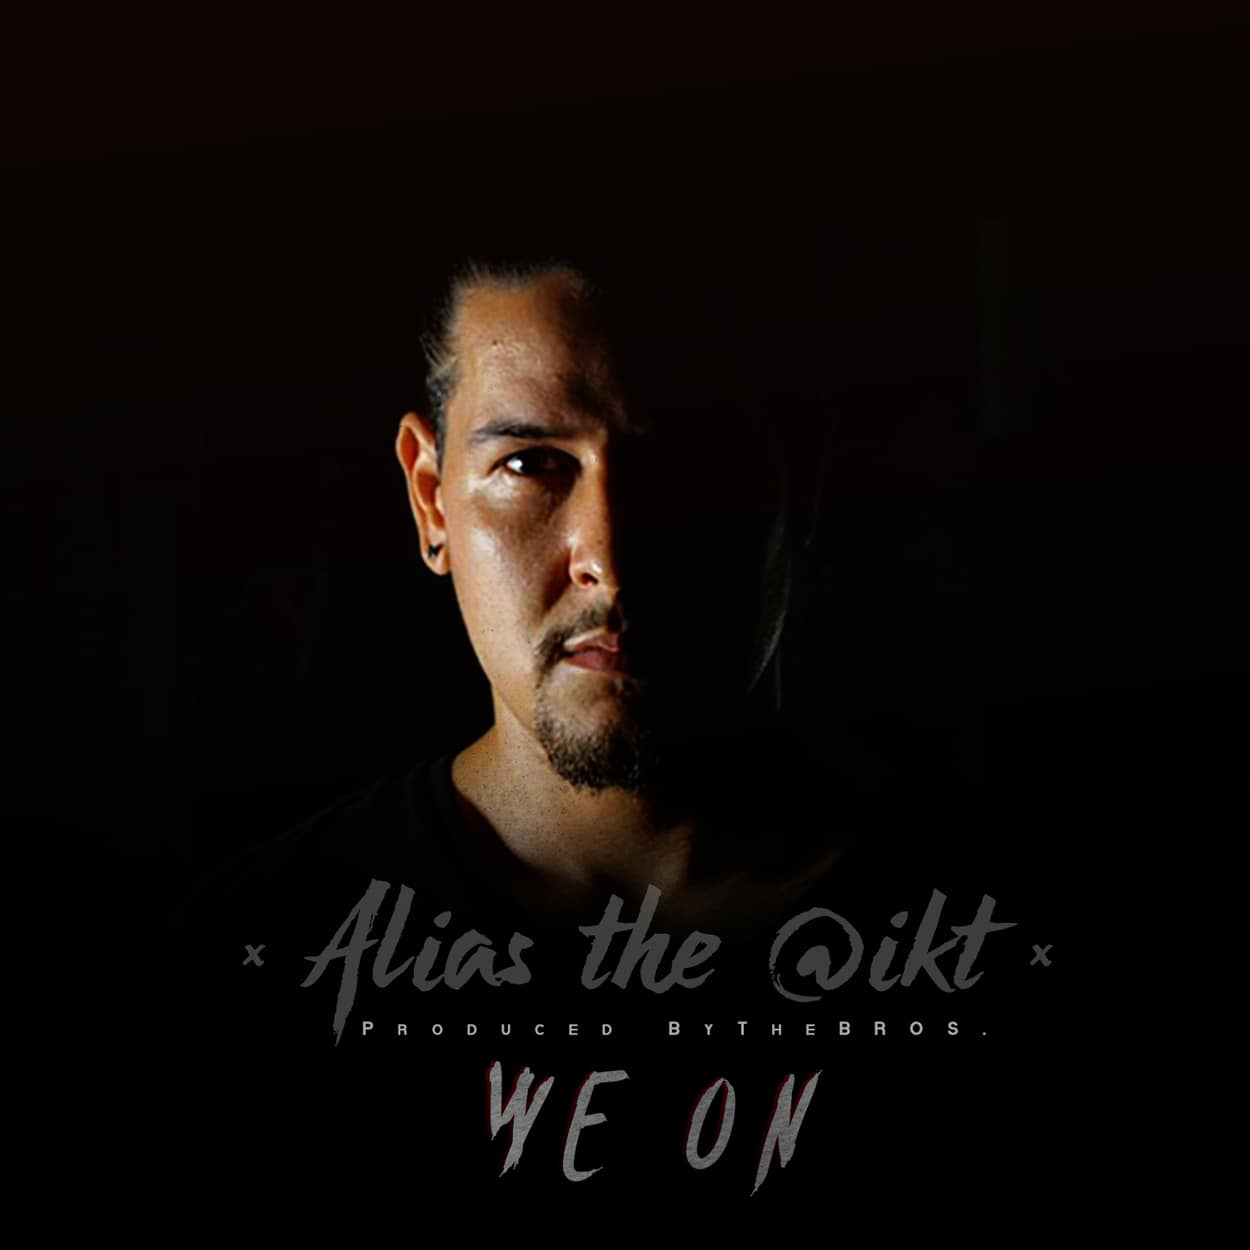 alias the @ikt - we on - album art design